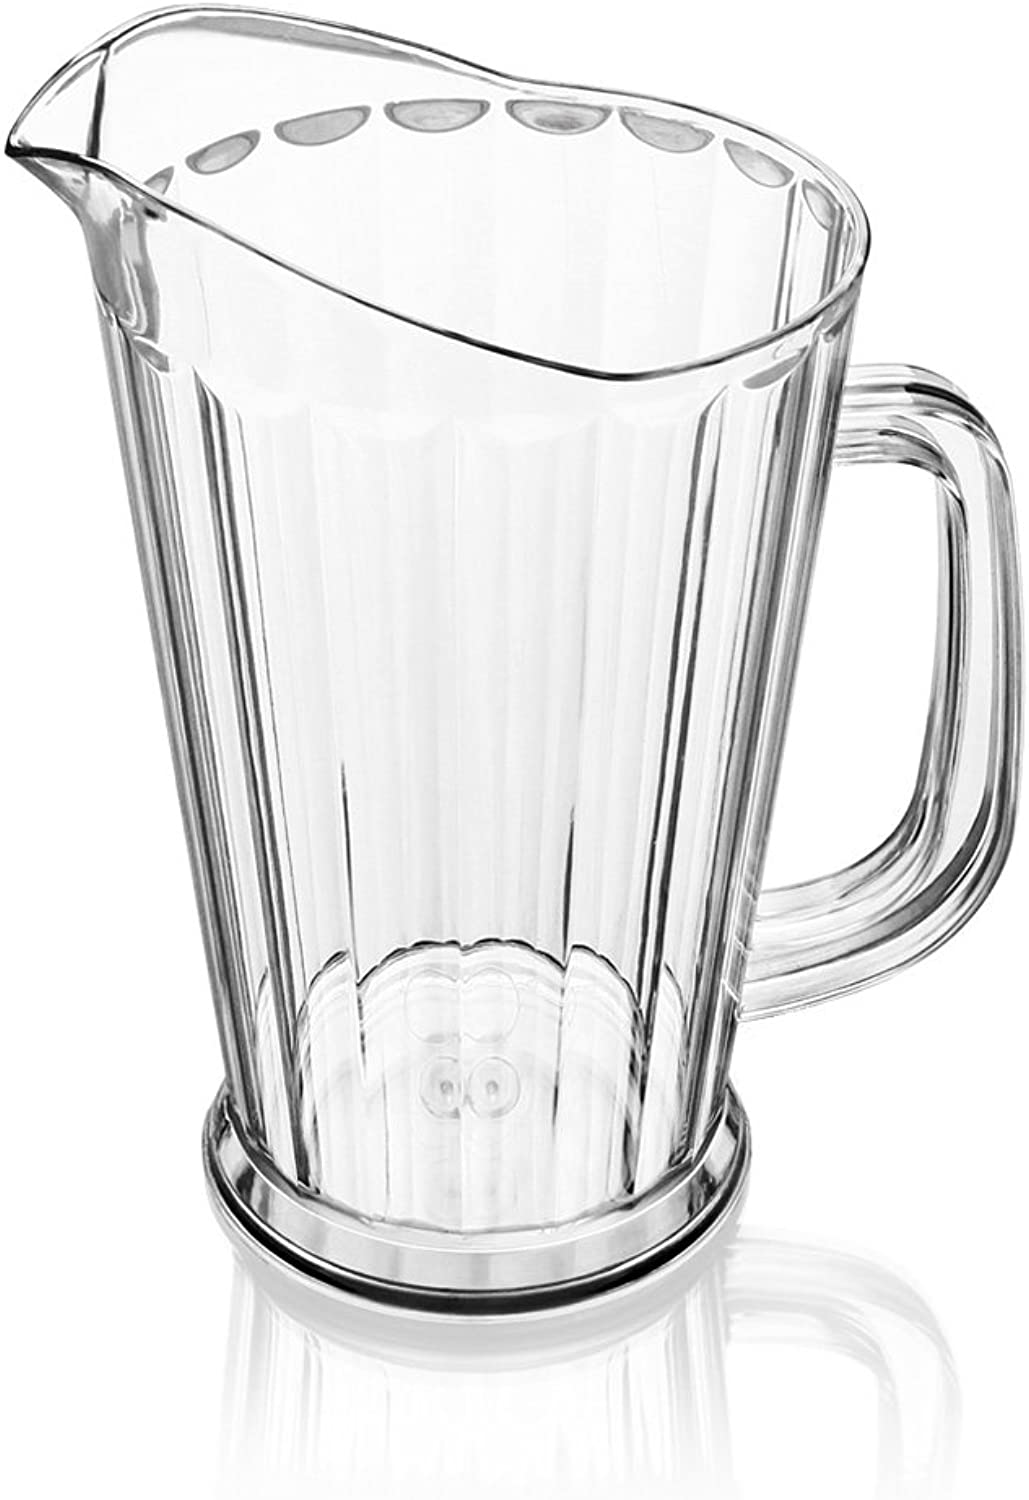 New Star Foodservice 46151 Polycarbonate Plastic Tapered Style Restaurant Water Pitcher, 60-Ounce, Clear, Set of 12